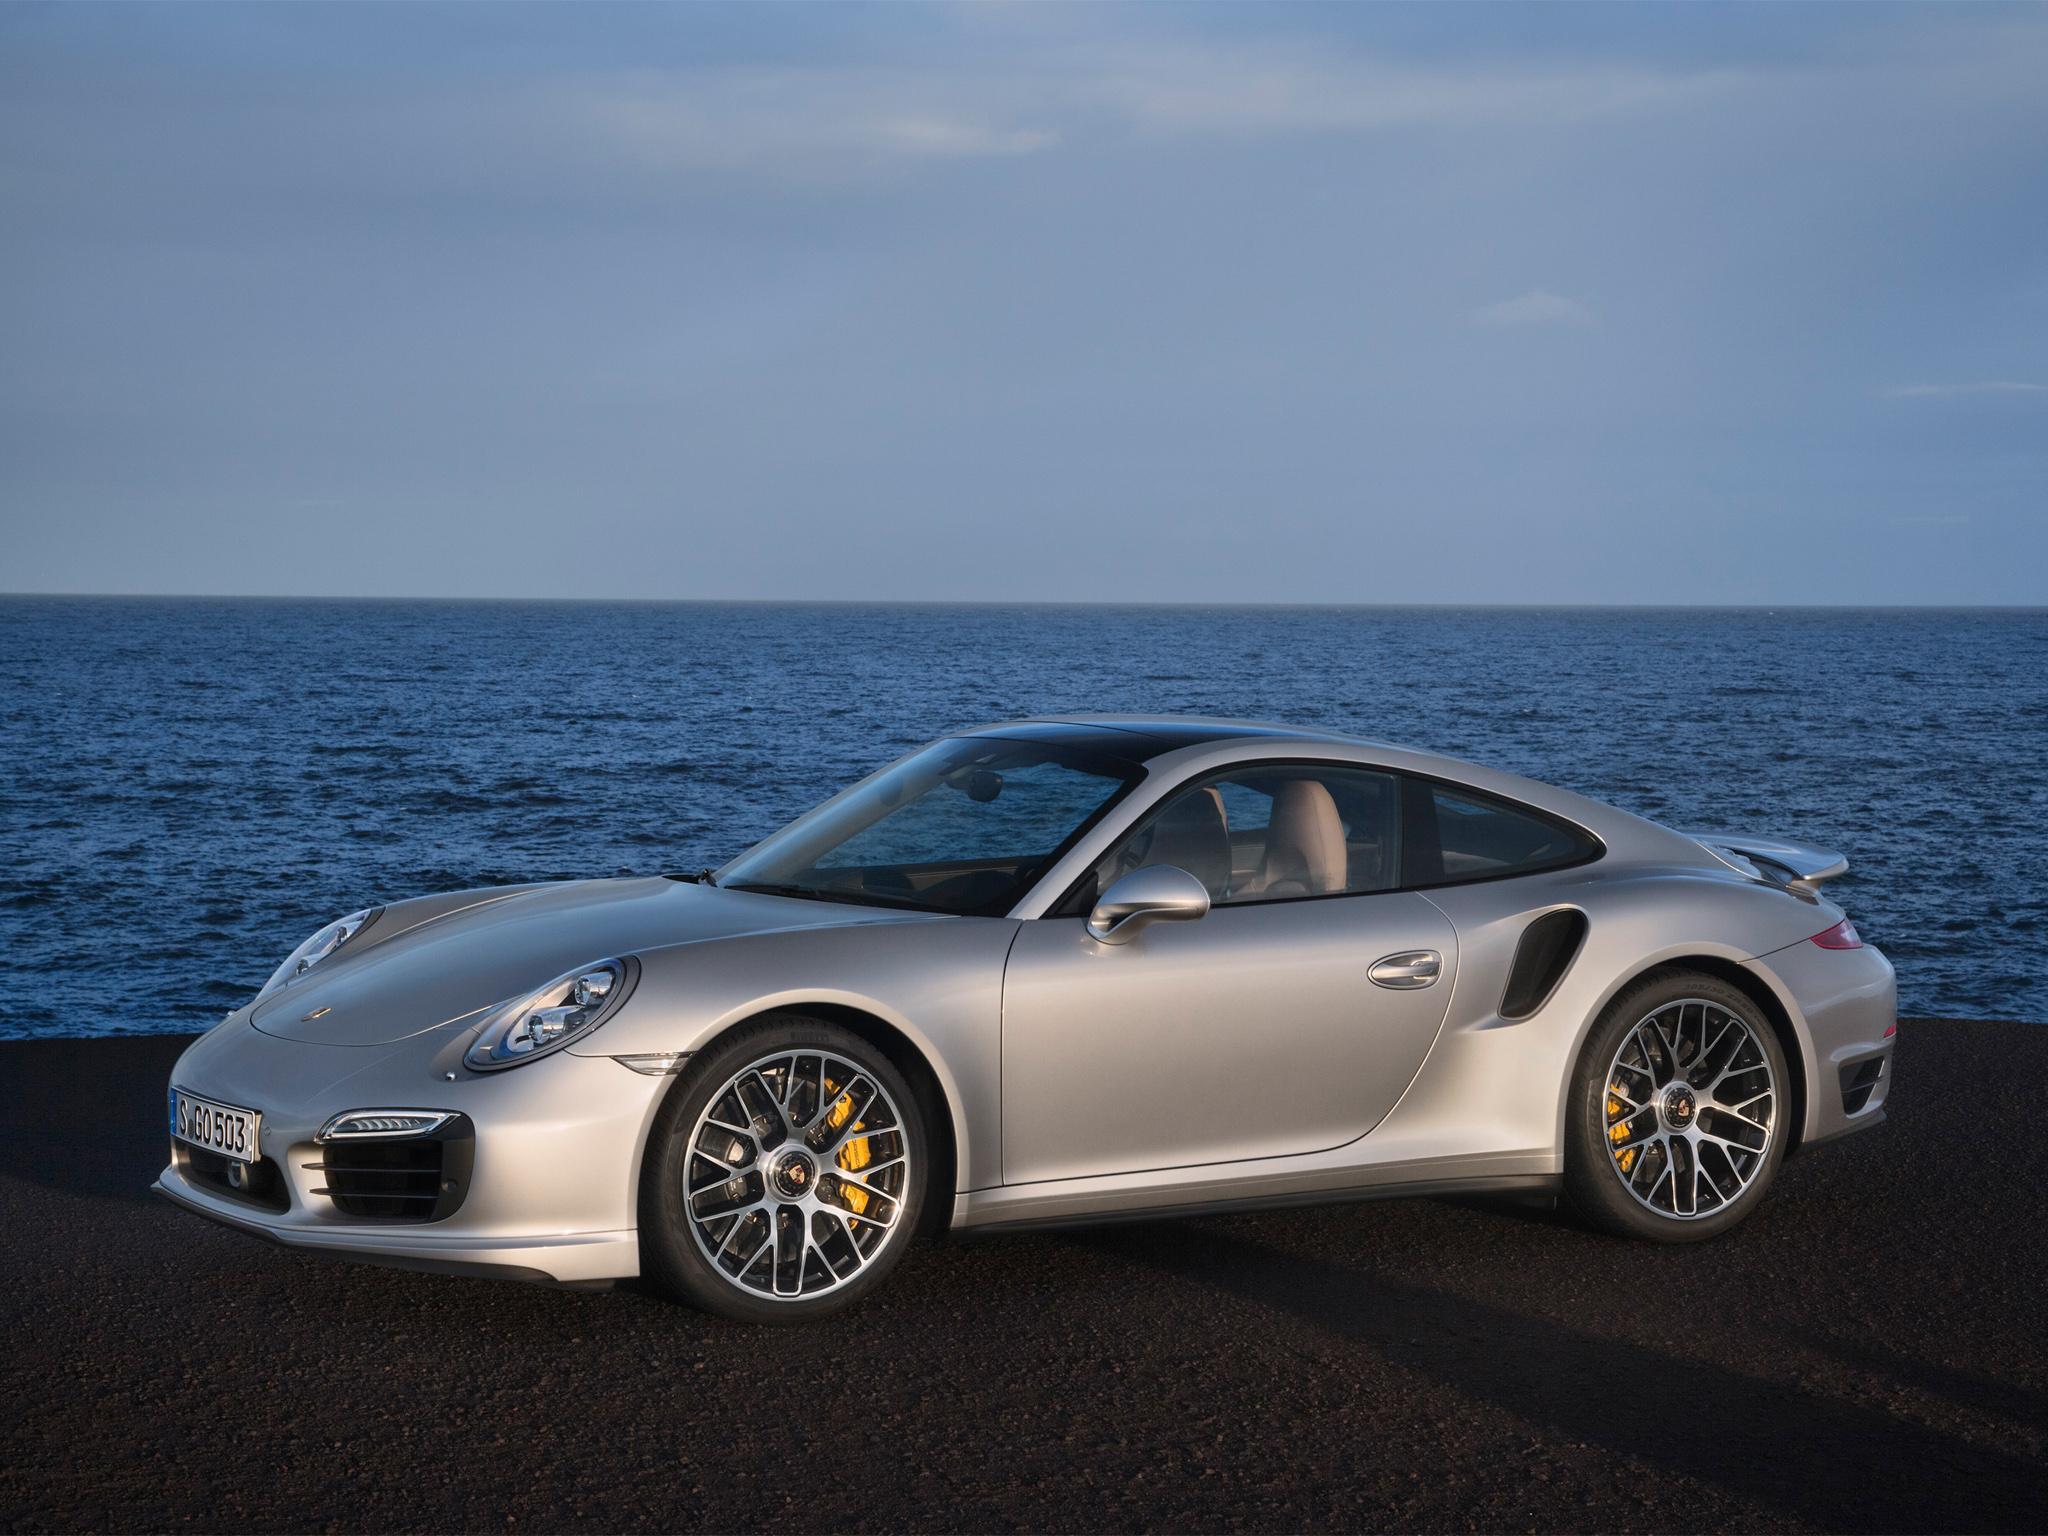 Porsche 911 Turbo Wallpapers and Background Images   stmednet 2048x1536